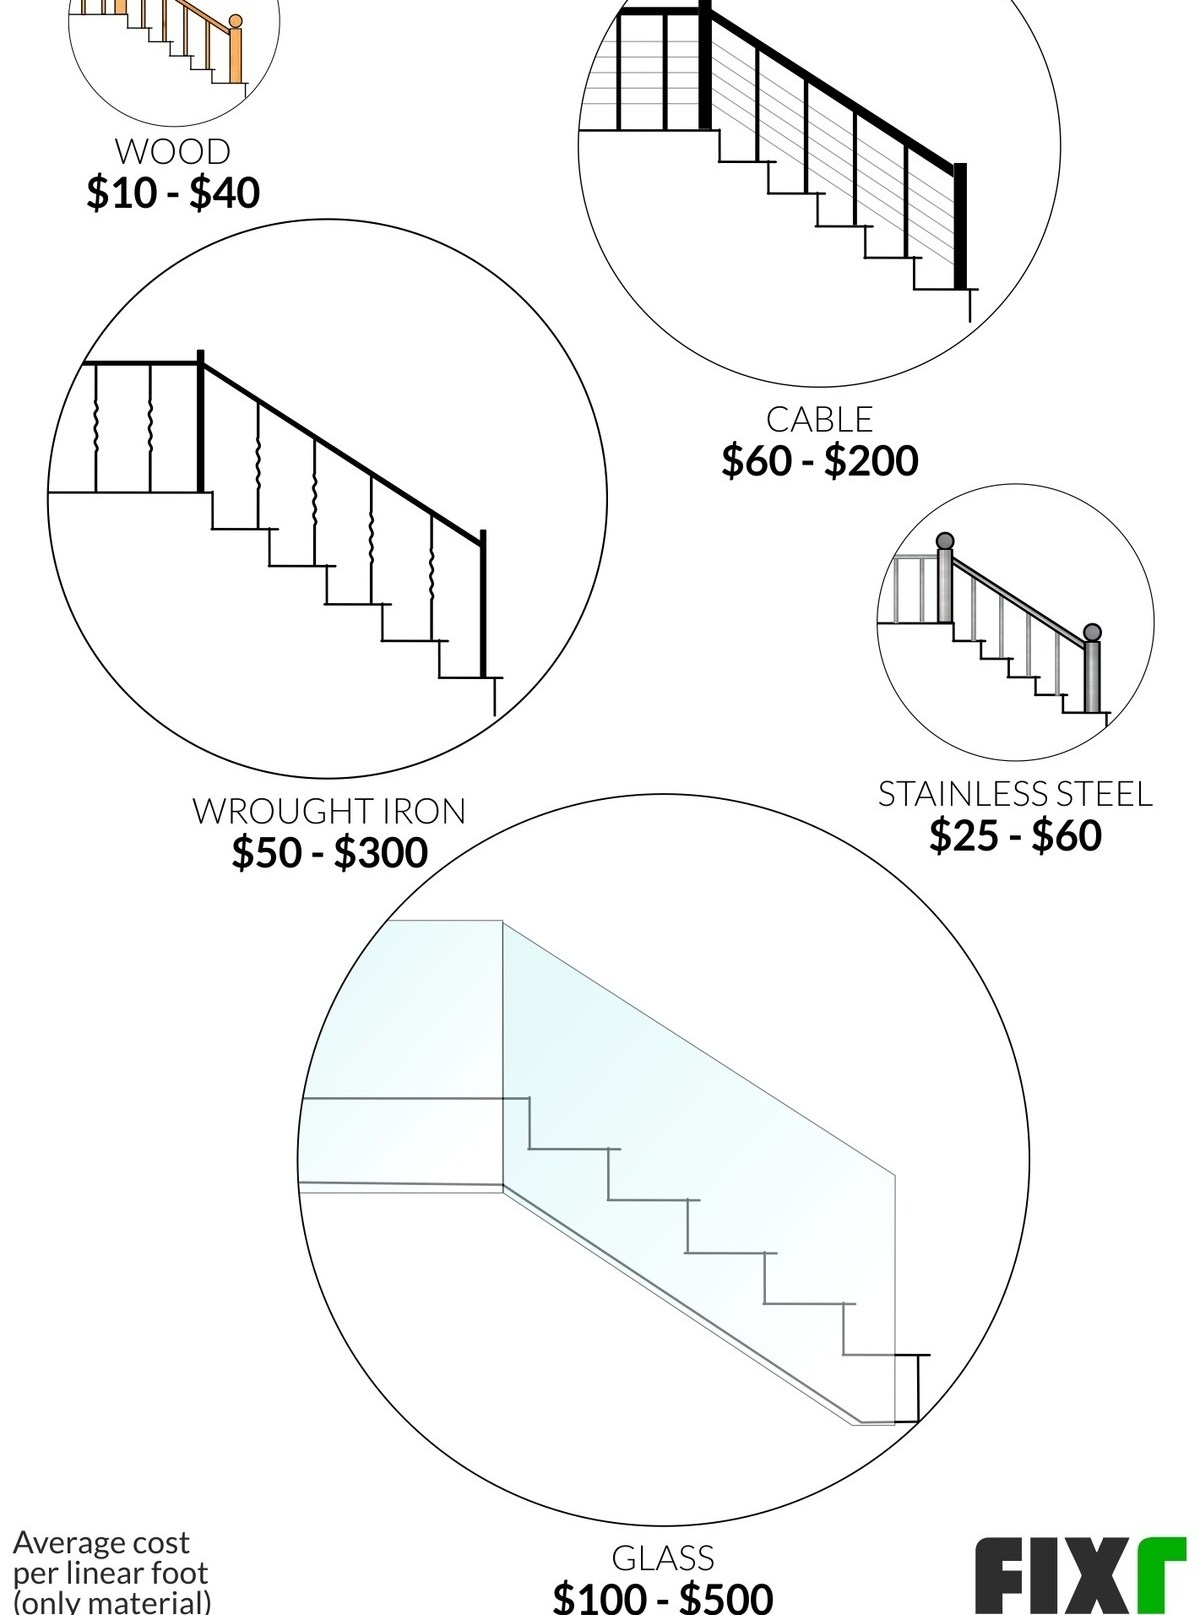 2020 Cost To Build Stairs Interior Staircase Installation Cost | Stair Railing Cost Per Linear Foot | Rod Railing | Stair Case | Pressure Treated | Average Cost | Wrought Iron Railings